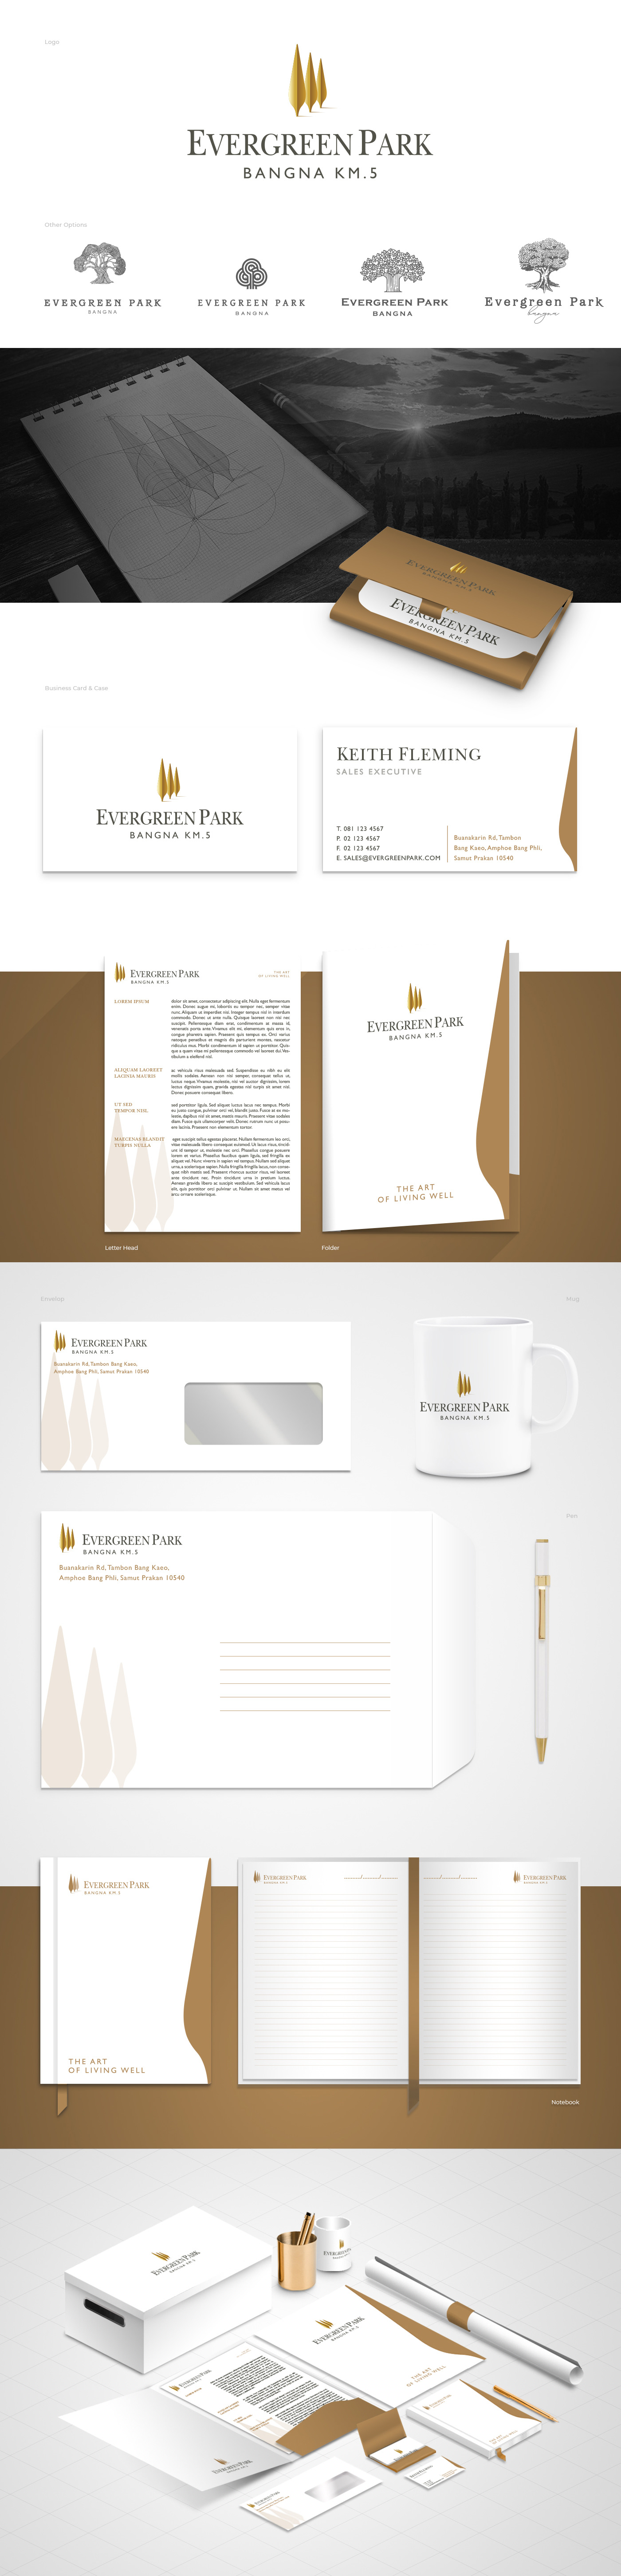 Branding and Corporate Identity Design